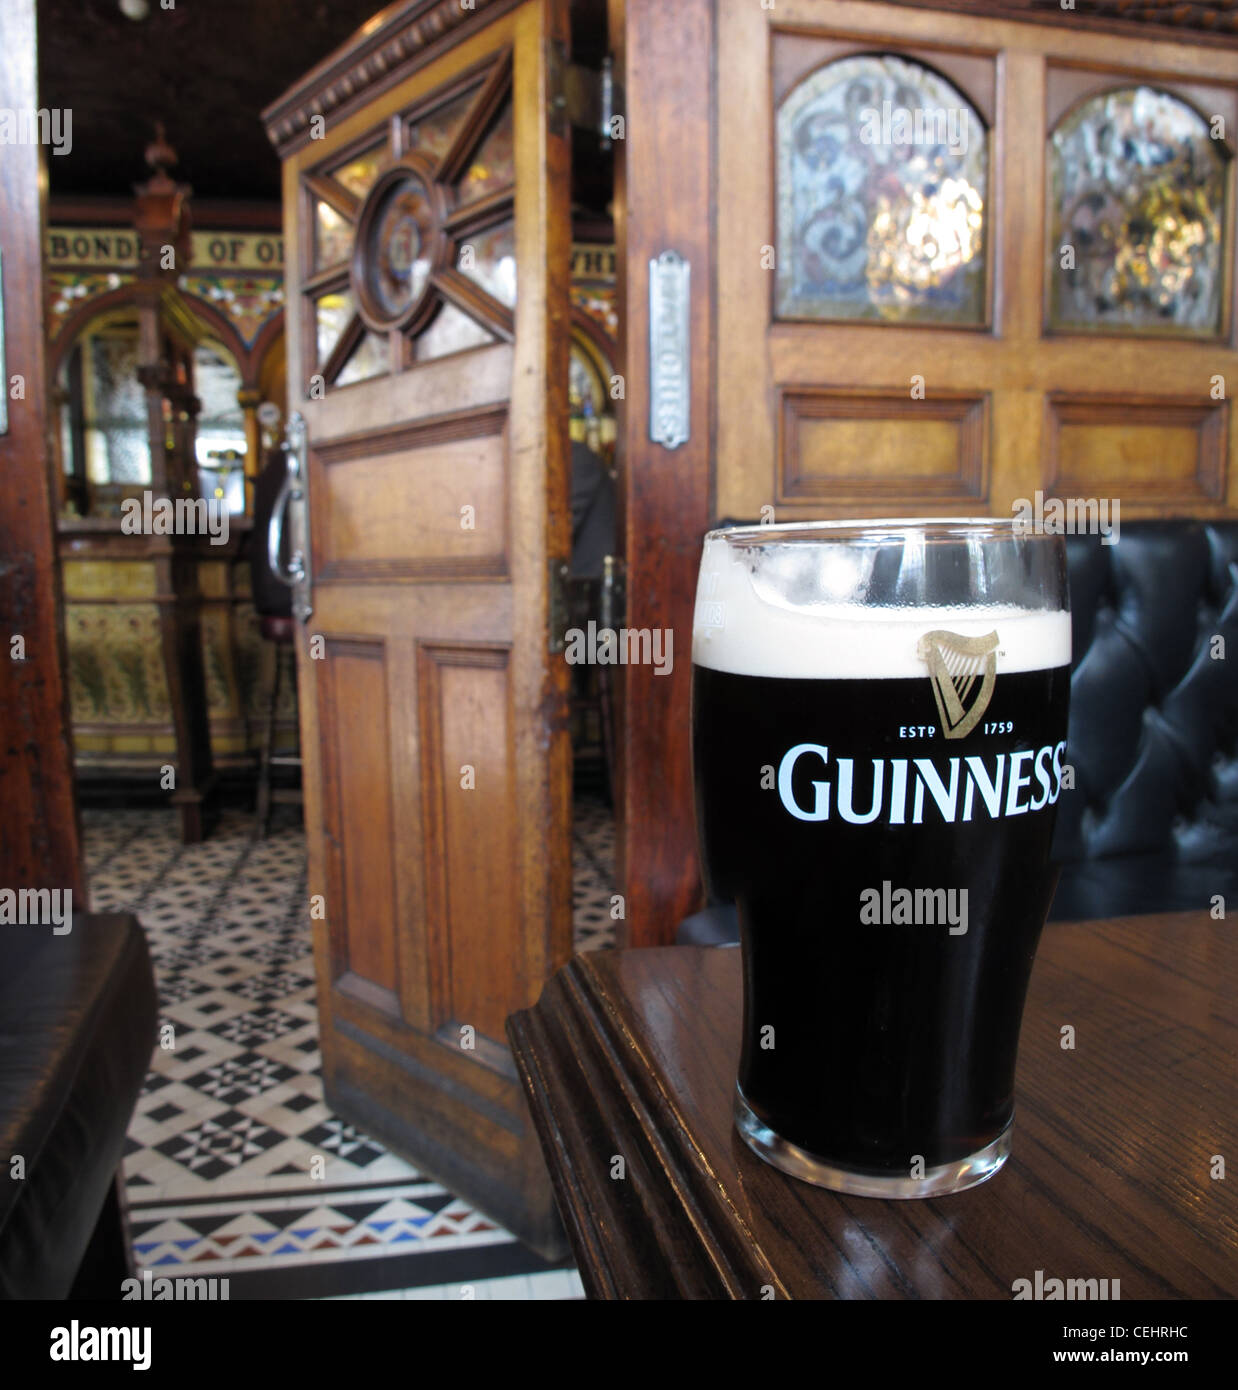 inside,crown,saloon,bar,with,pint,of,Guiness,pint,drink,beverage,Guiness,pint,cubbyhole,NT,PUb,national,trust,NI,Northern,Ireland,Northern,Ireland,Great,Victoria,Street,theatre,quarter,Europe,snug,classic,pub,public,house,victorian,gin,palace,design,old,fashioned,inside,crown,saloon,bar,Belfast,with,pint,of,Guiness,pint,drink,beverage,Guiness,pint,NT,PUb,national,trust,NI,Northern,Ireland,Northern,Ireland,Great,Victoria,Street,theatre,quarter,Europe,snug,gotonysmith,gotonysmith,Buy Pictures of,Buy Images Of